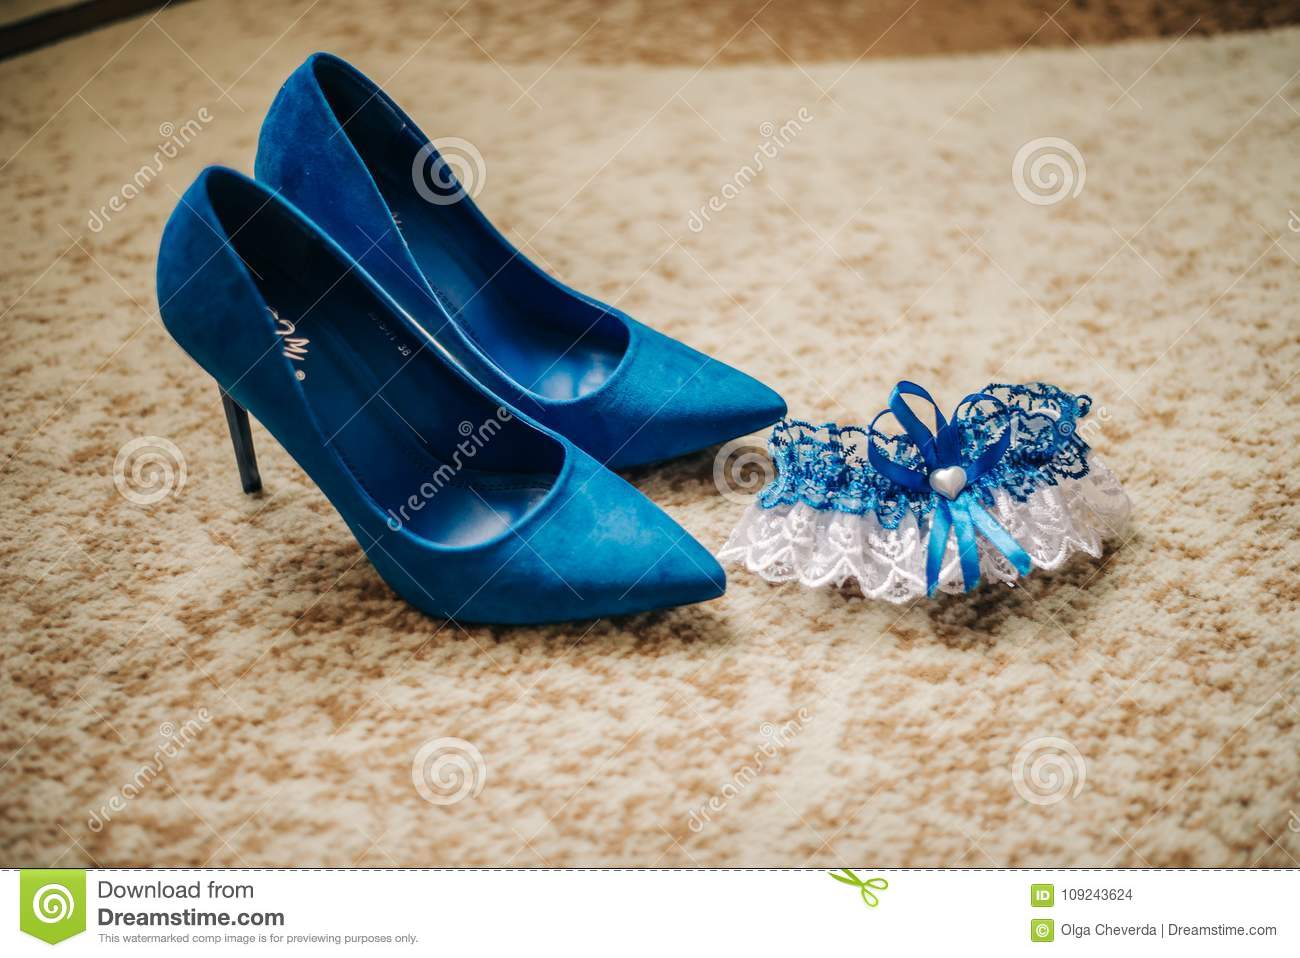 Garter of a bride and high-heeled shoes